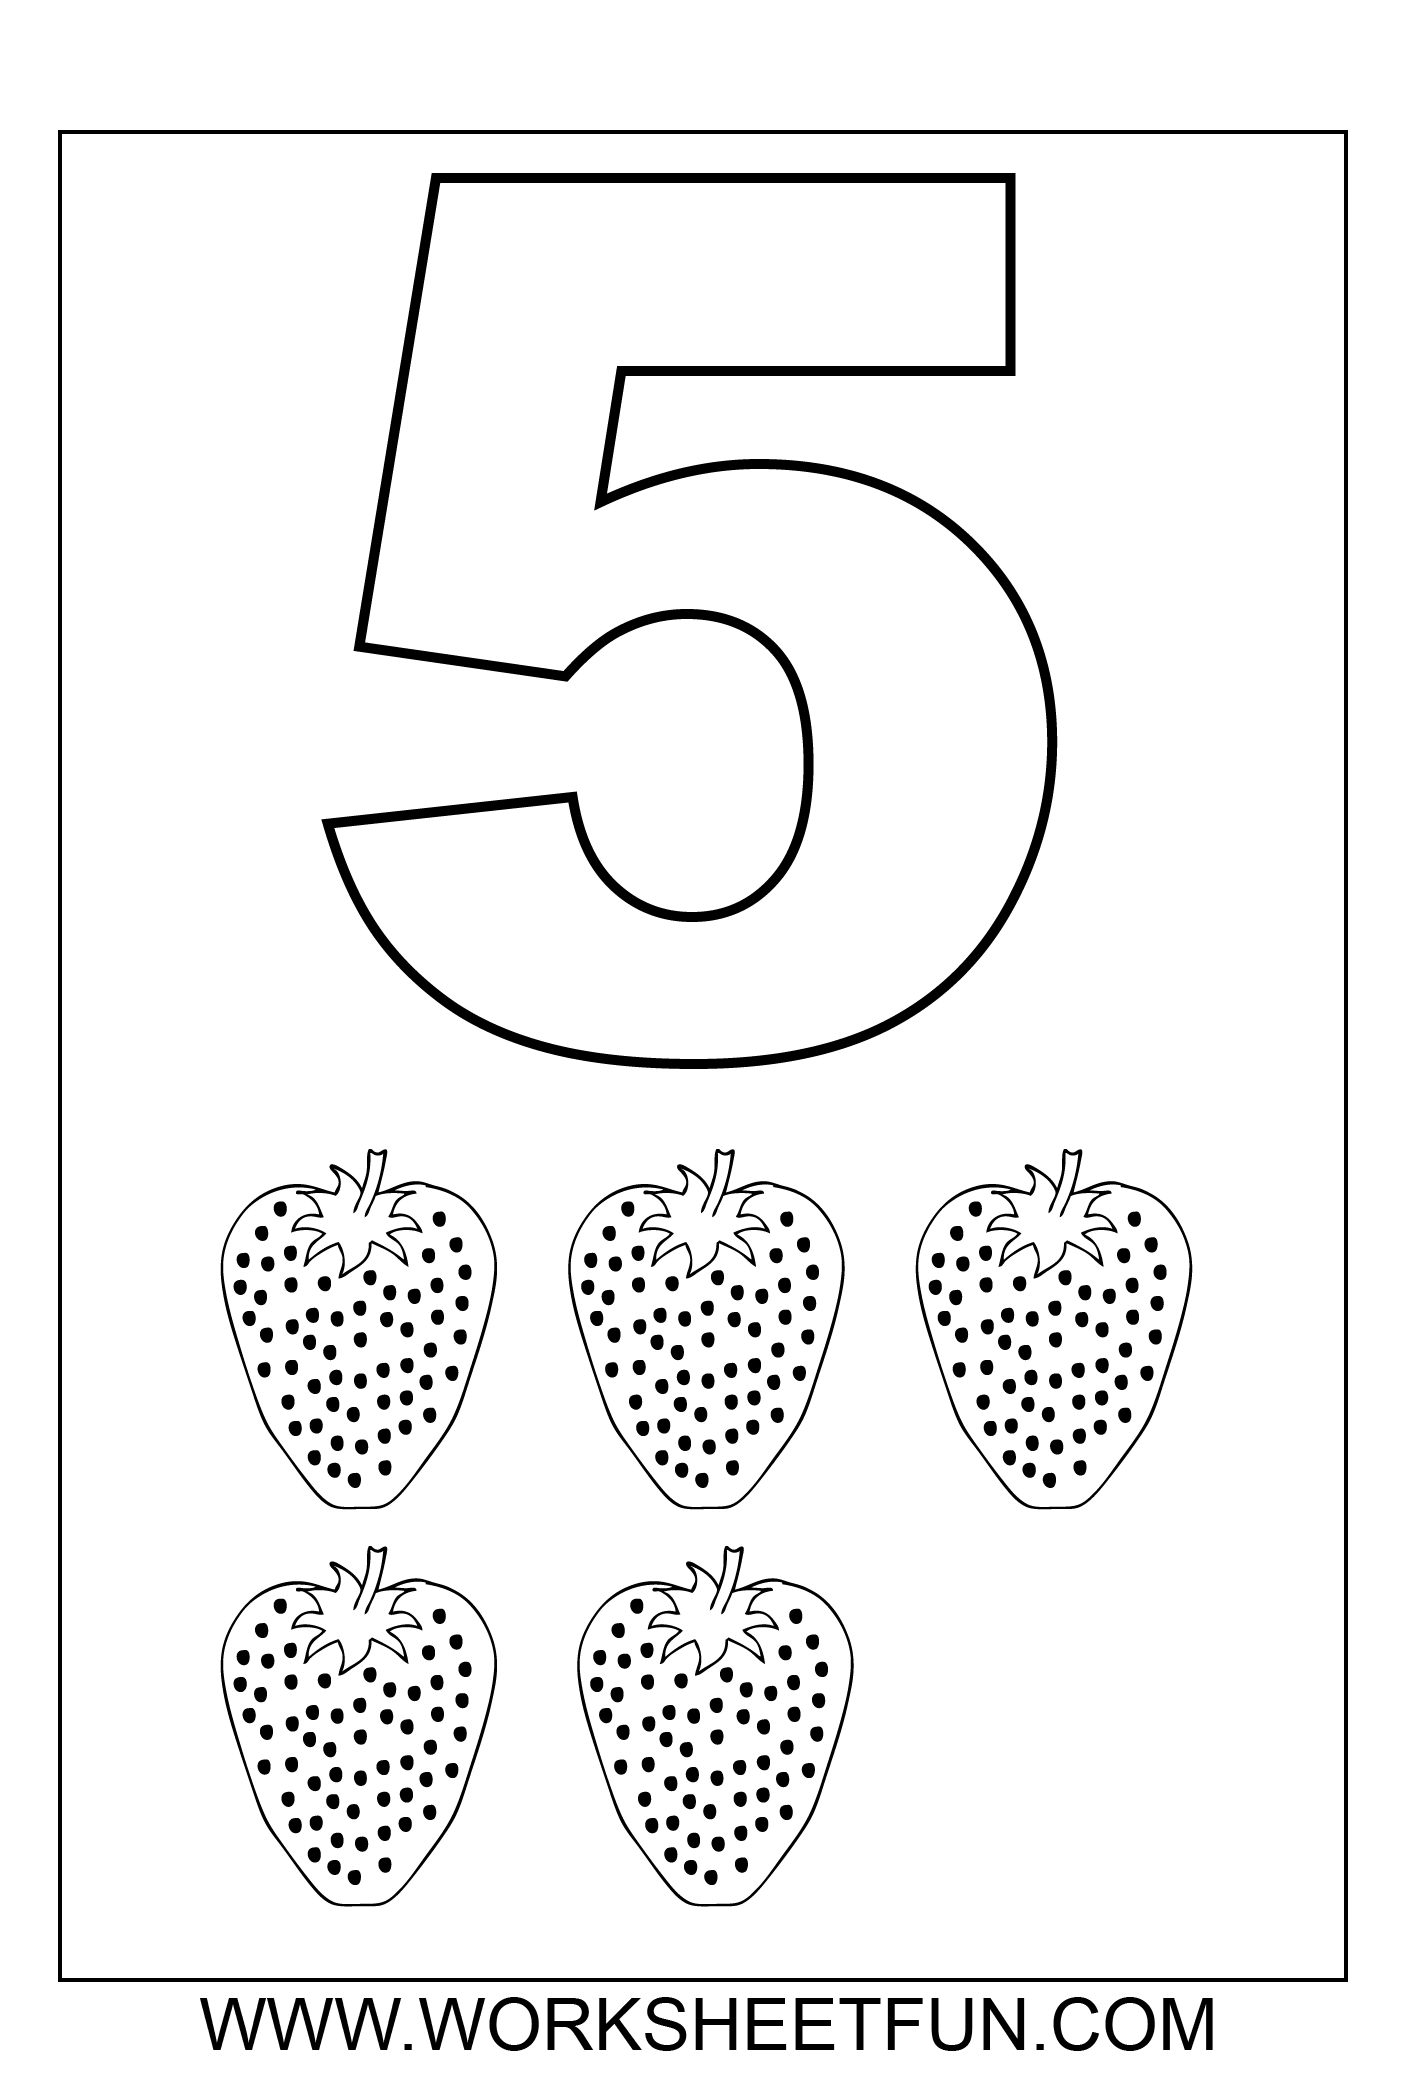 number coloring darzelio mokymui pinterest worksheets